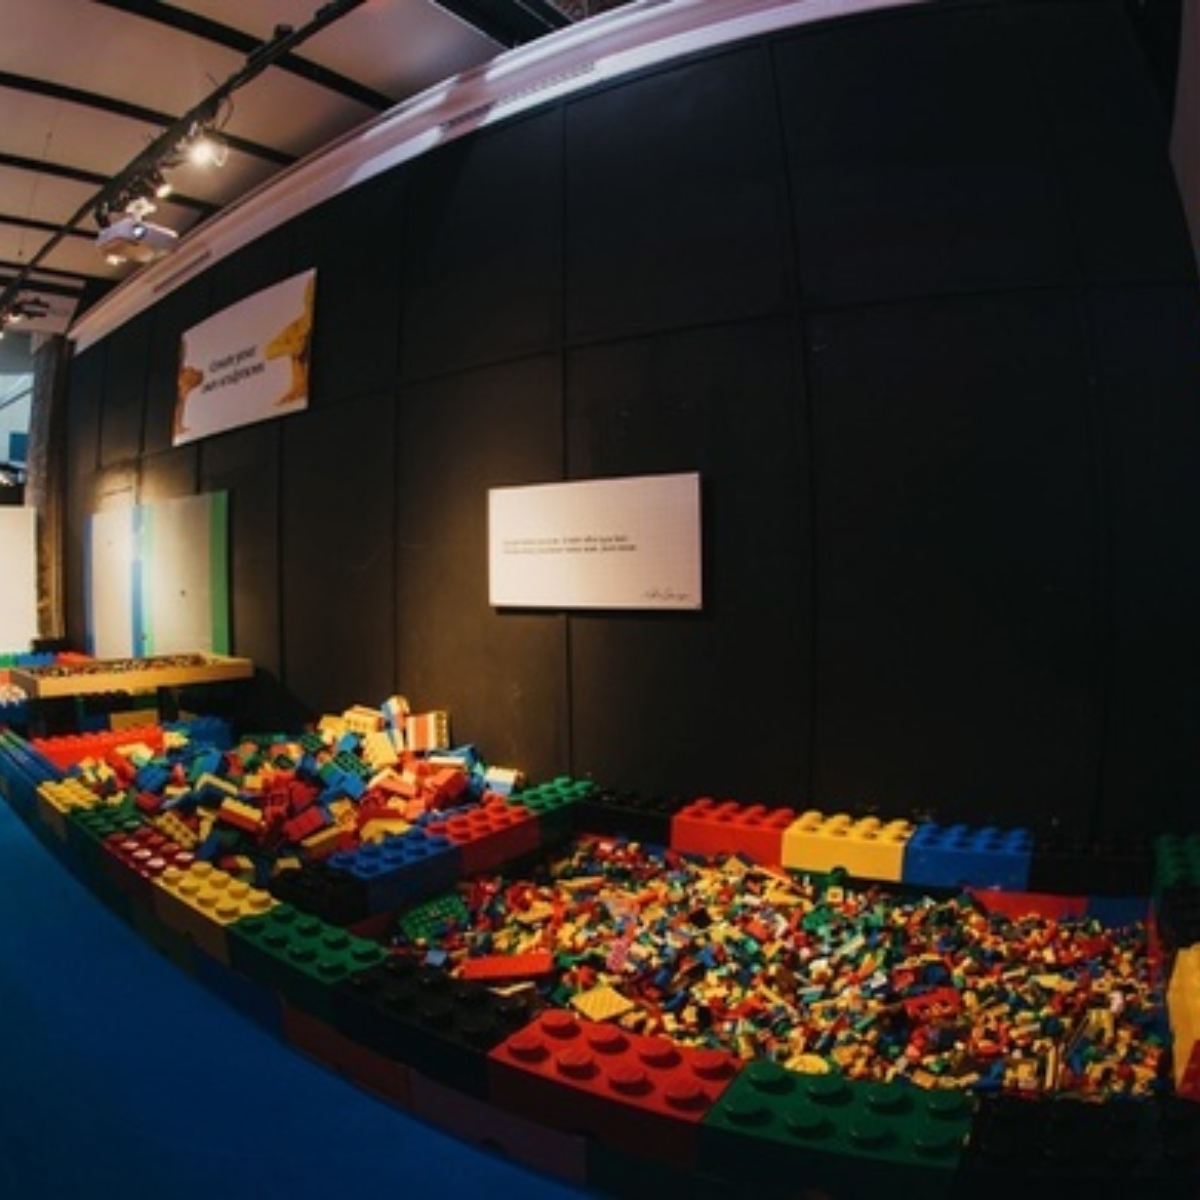 The Art of the Brick Images